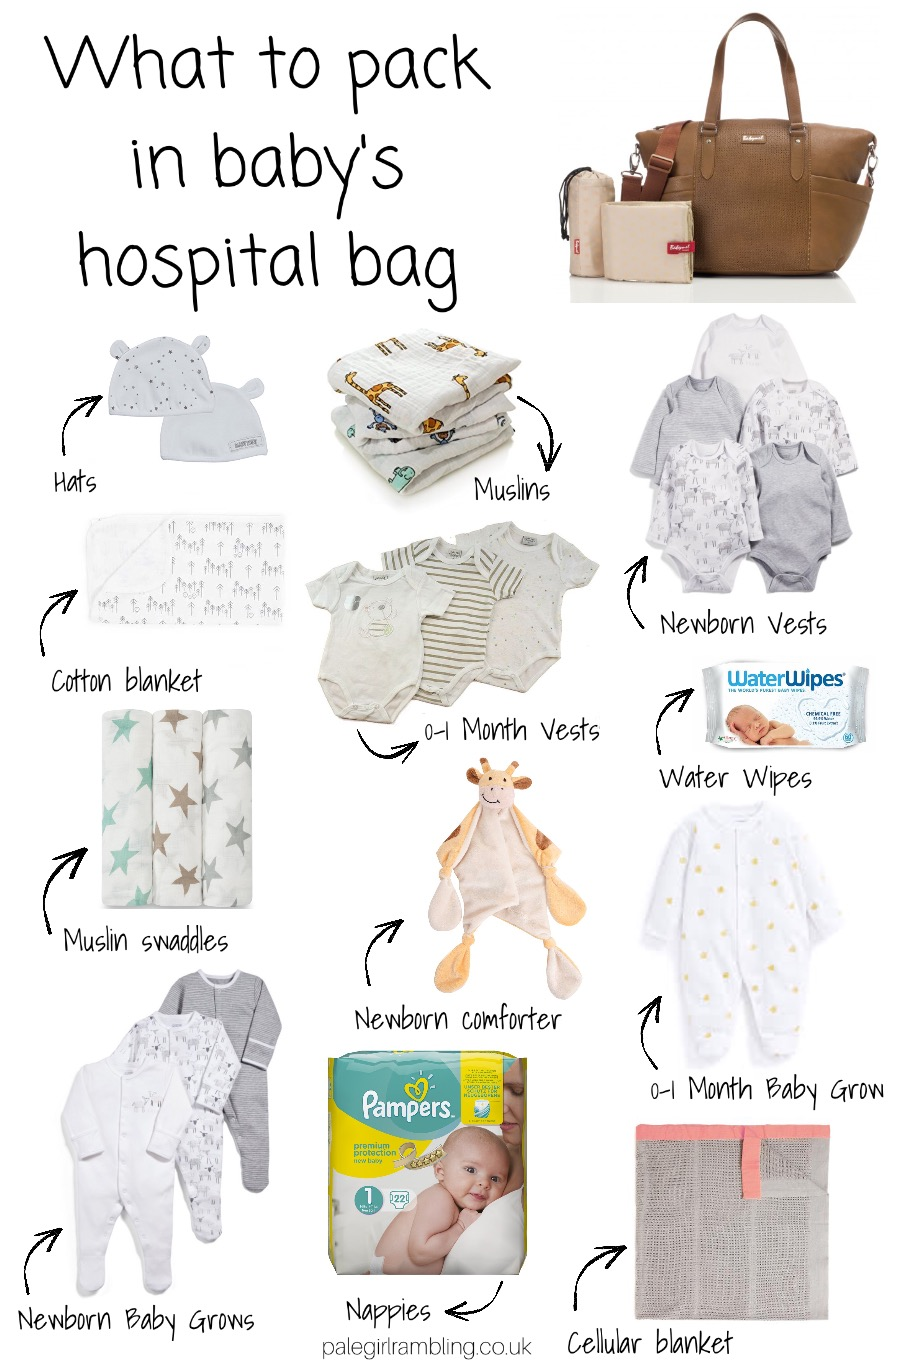 What's in baby's hospital bag what to pack